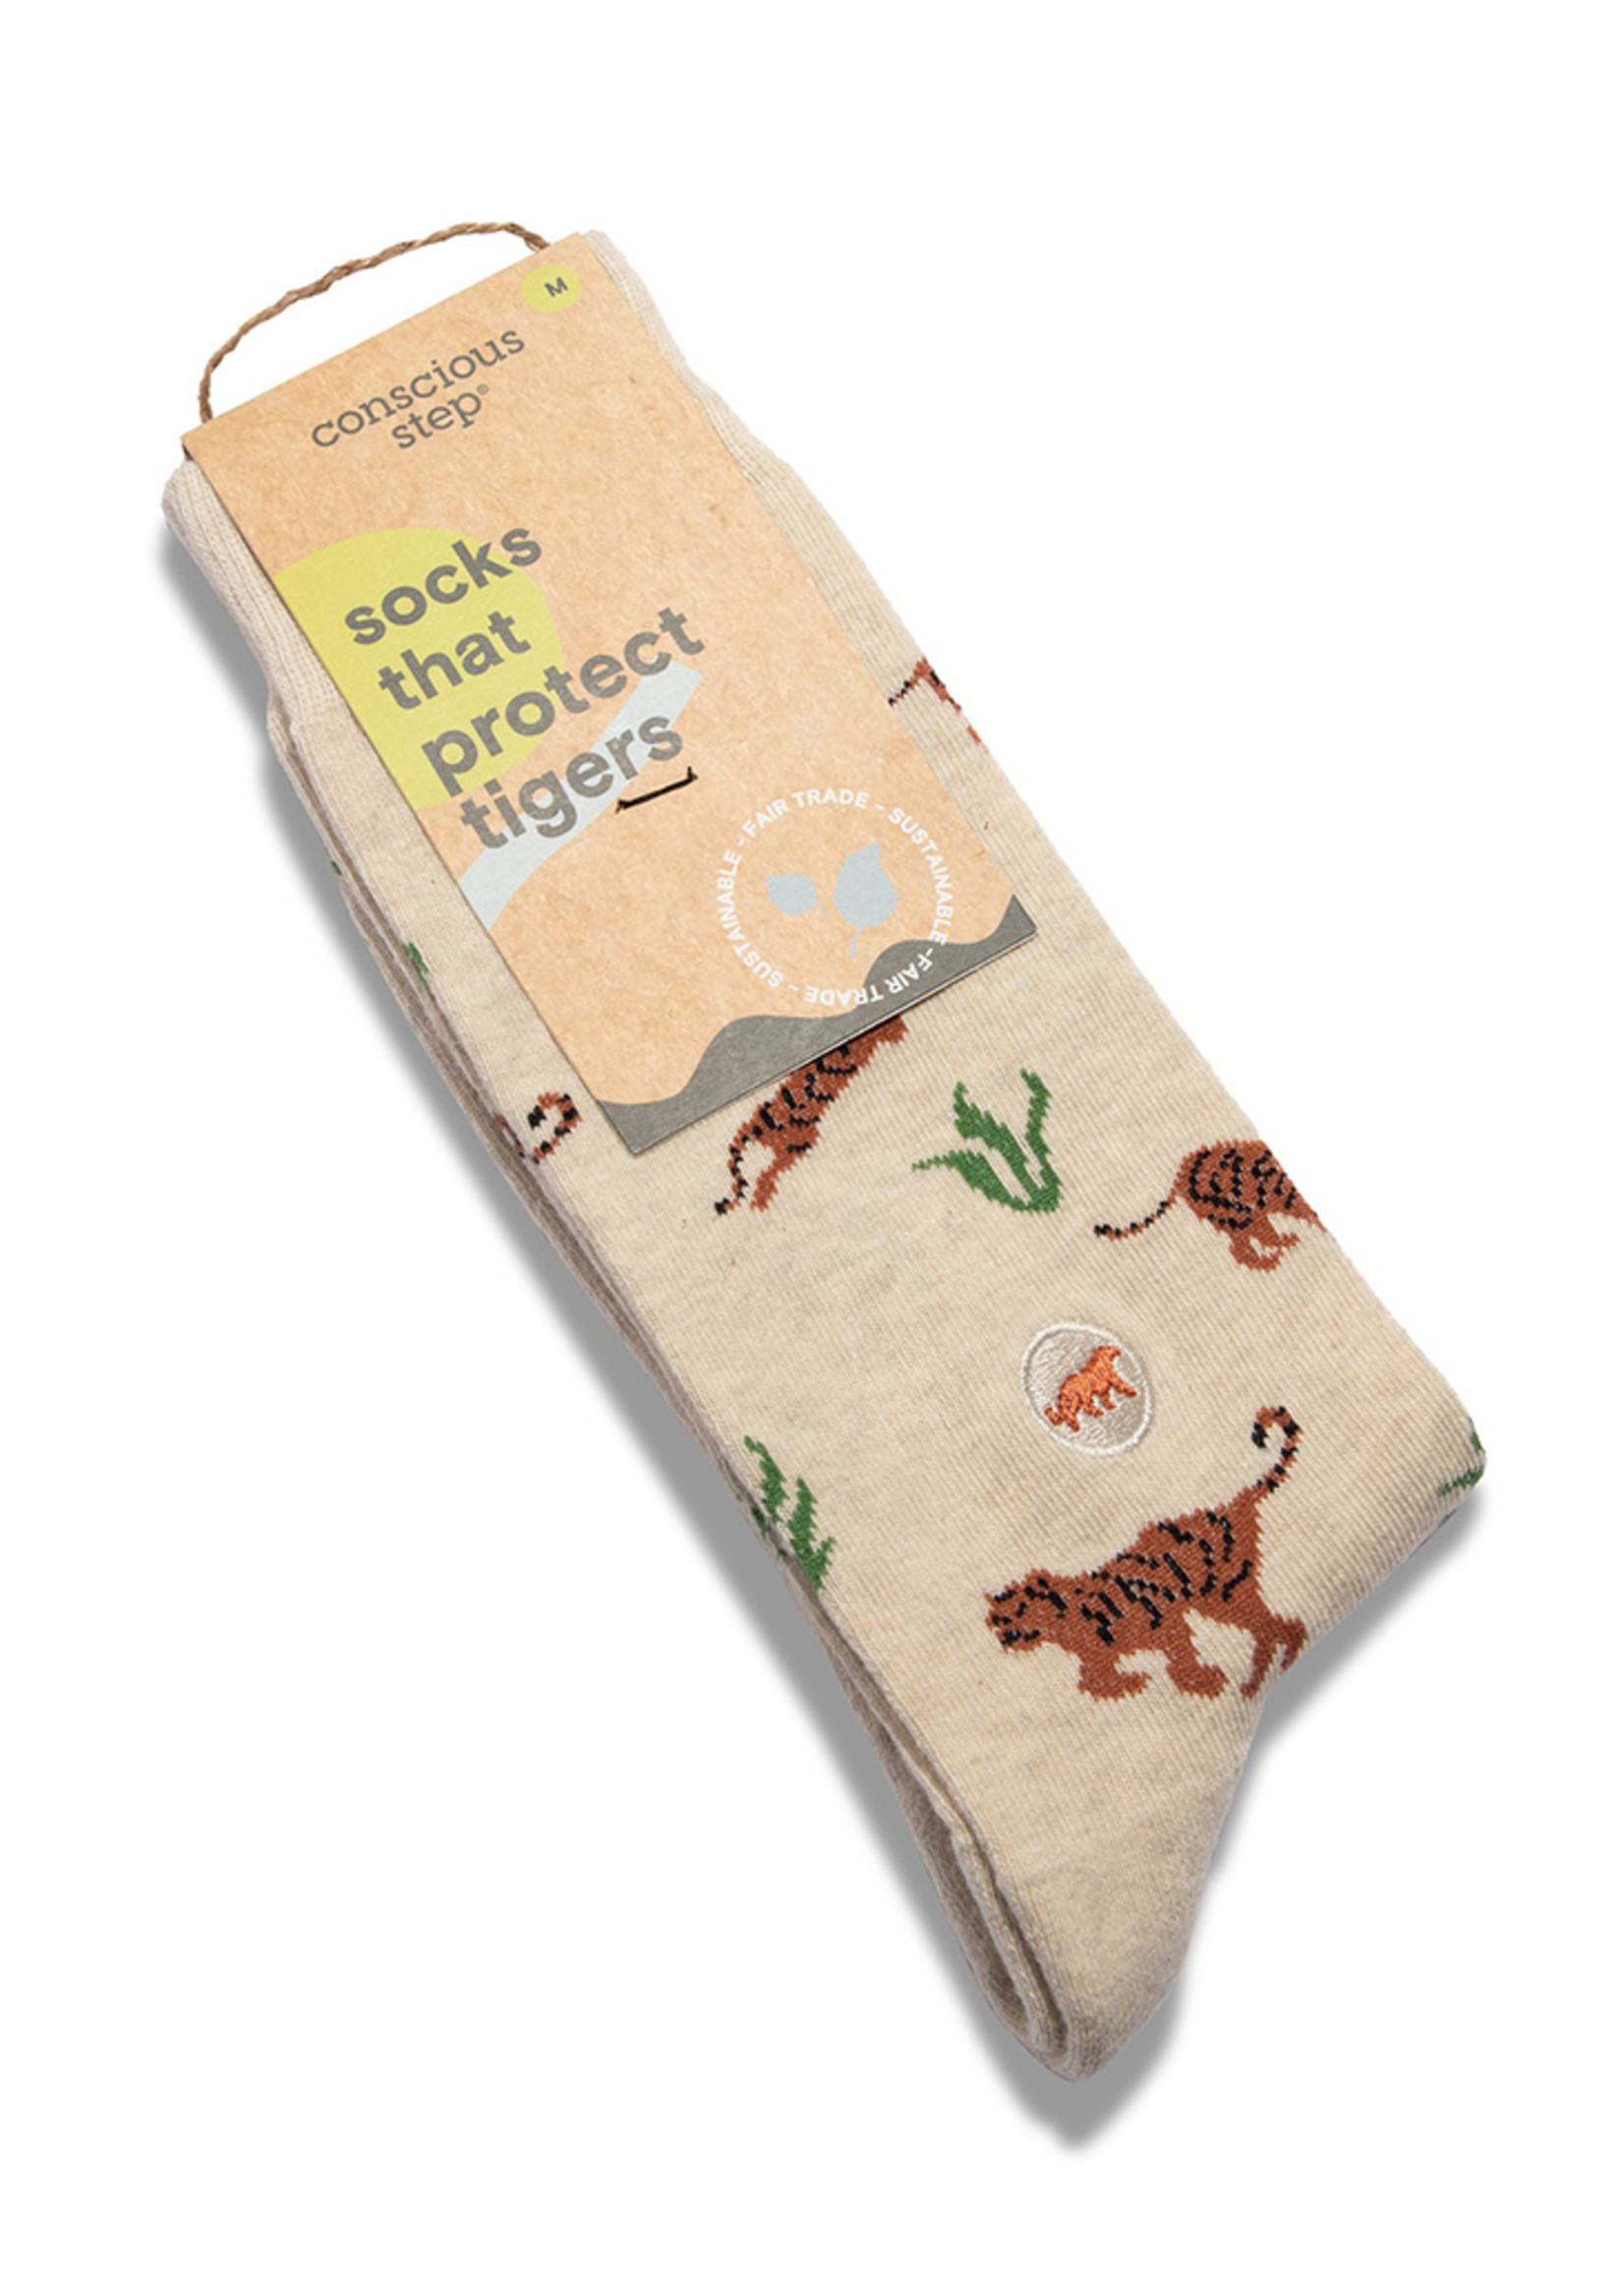 Conscious Step Women's Socks that Protect Tigers